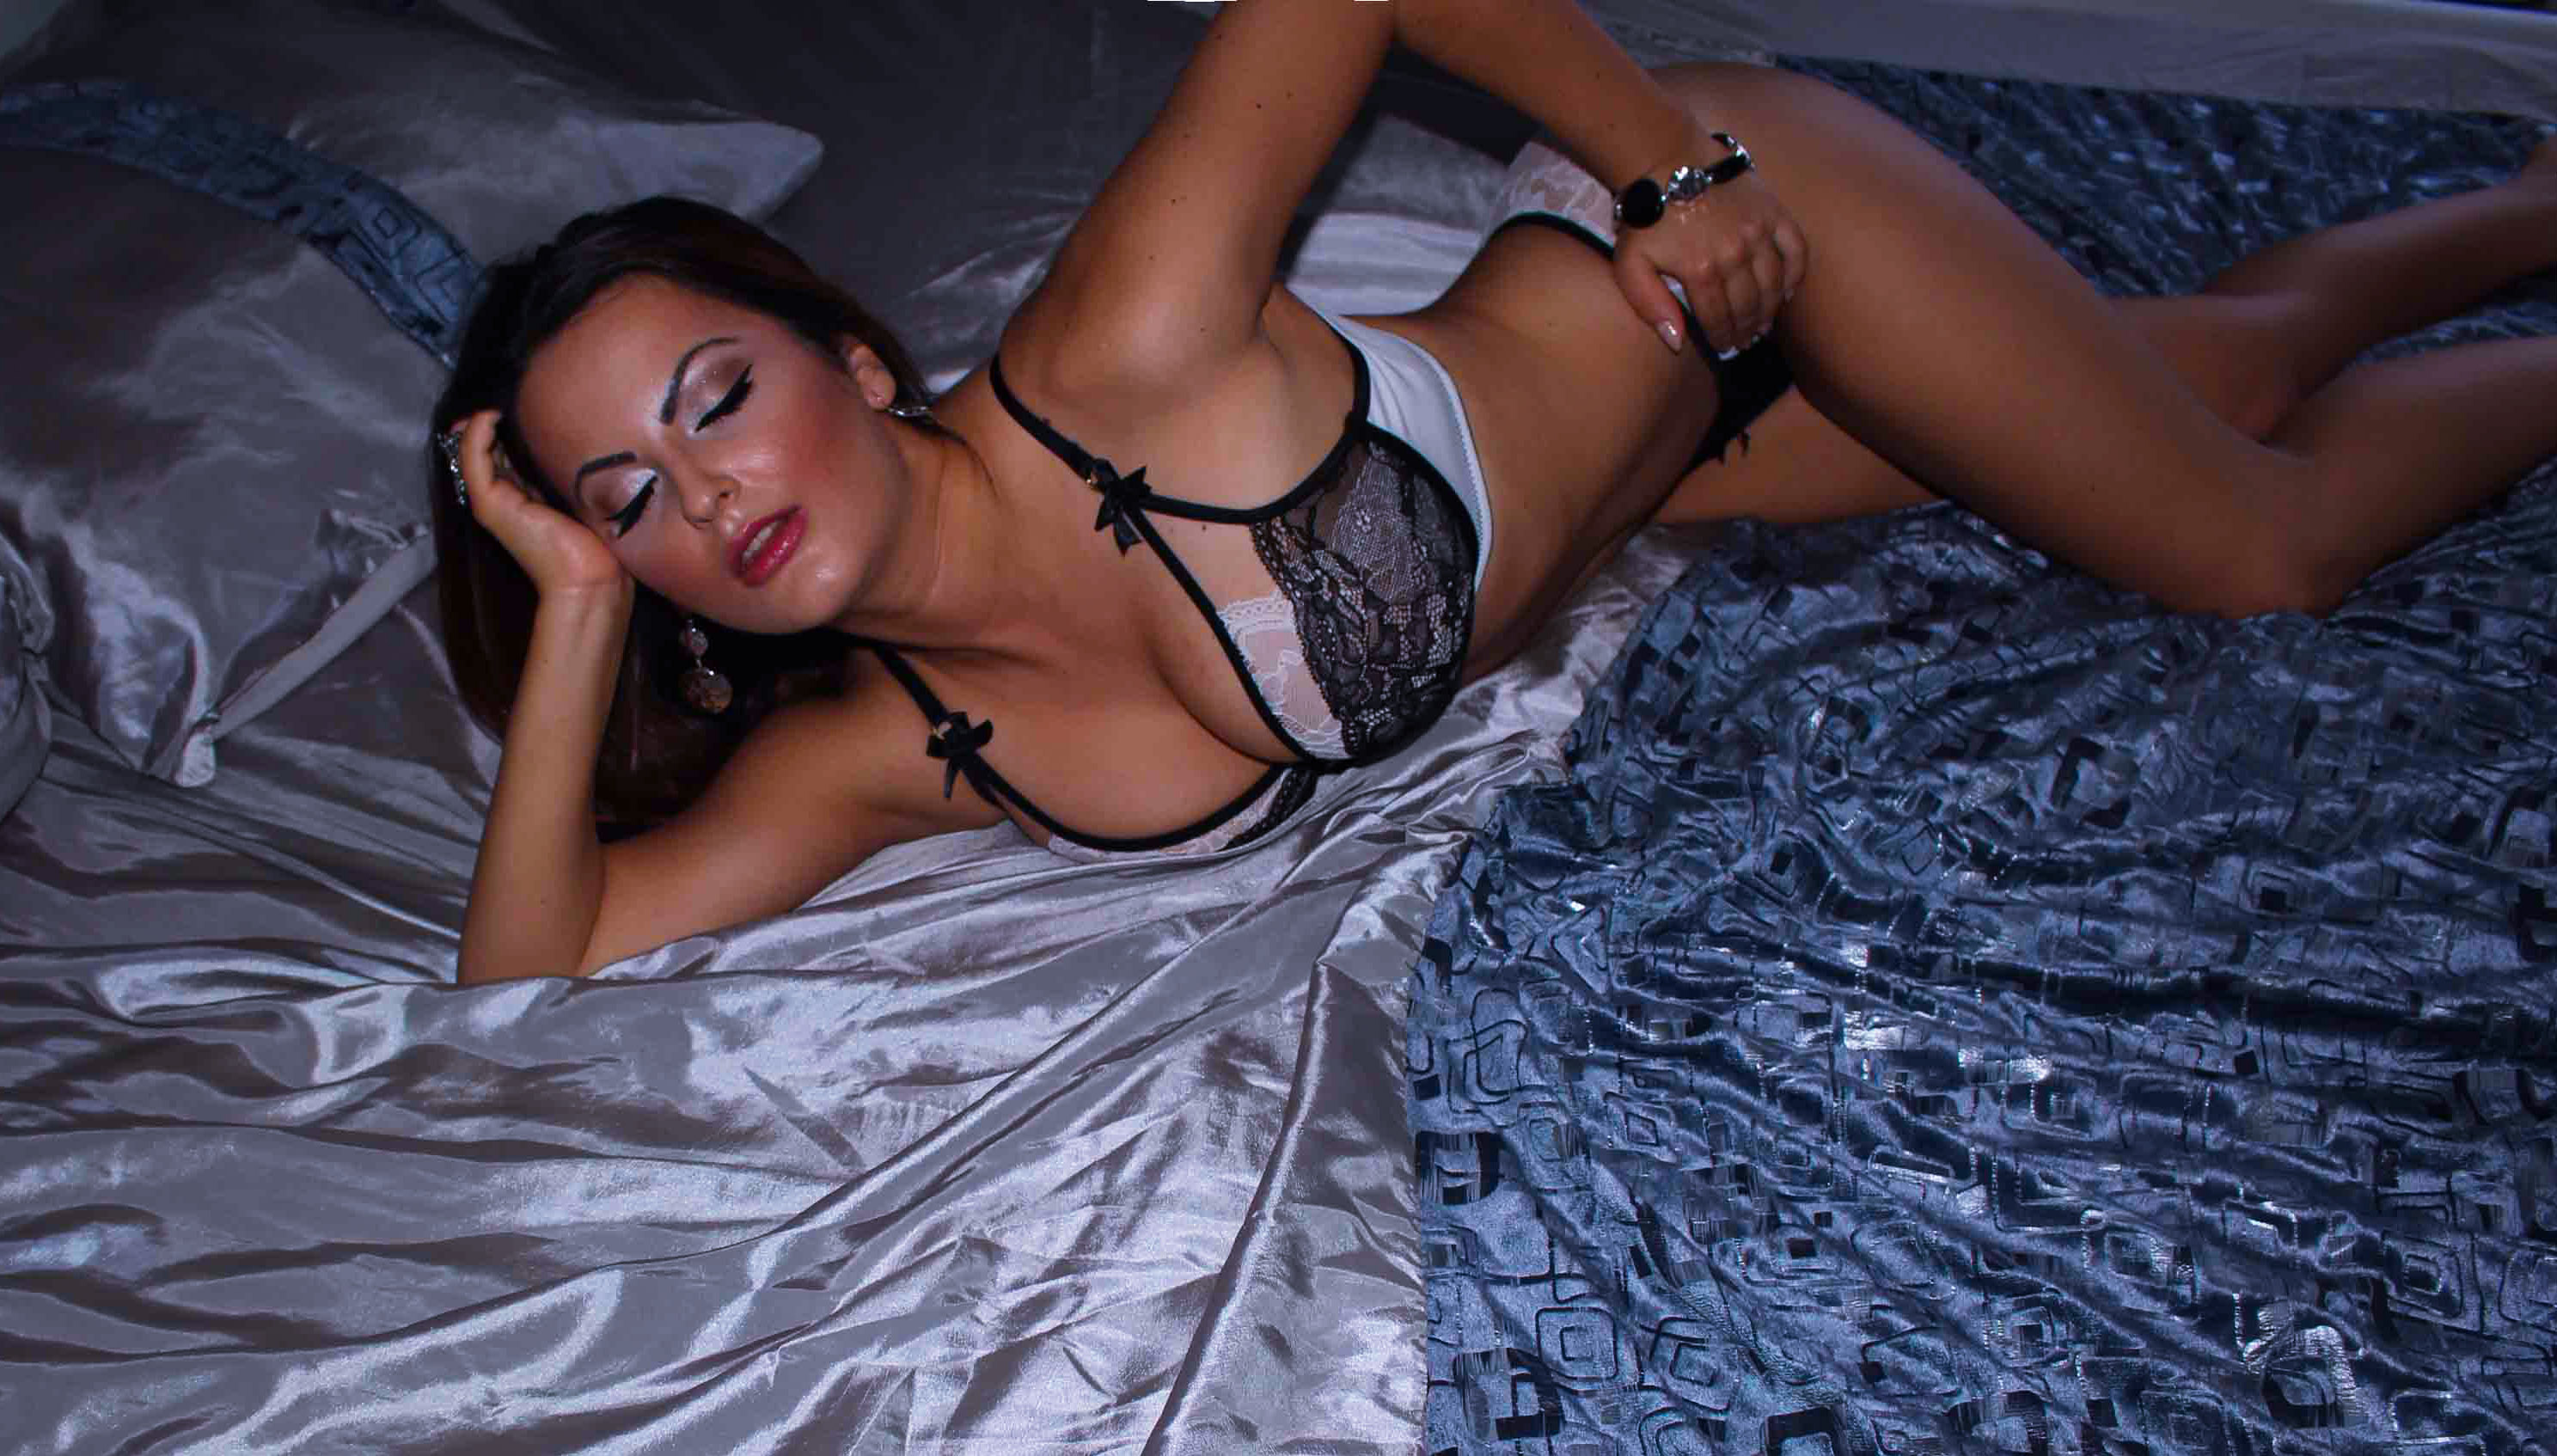 bøsse copenhagen cheap escorts lolland escort